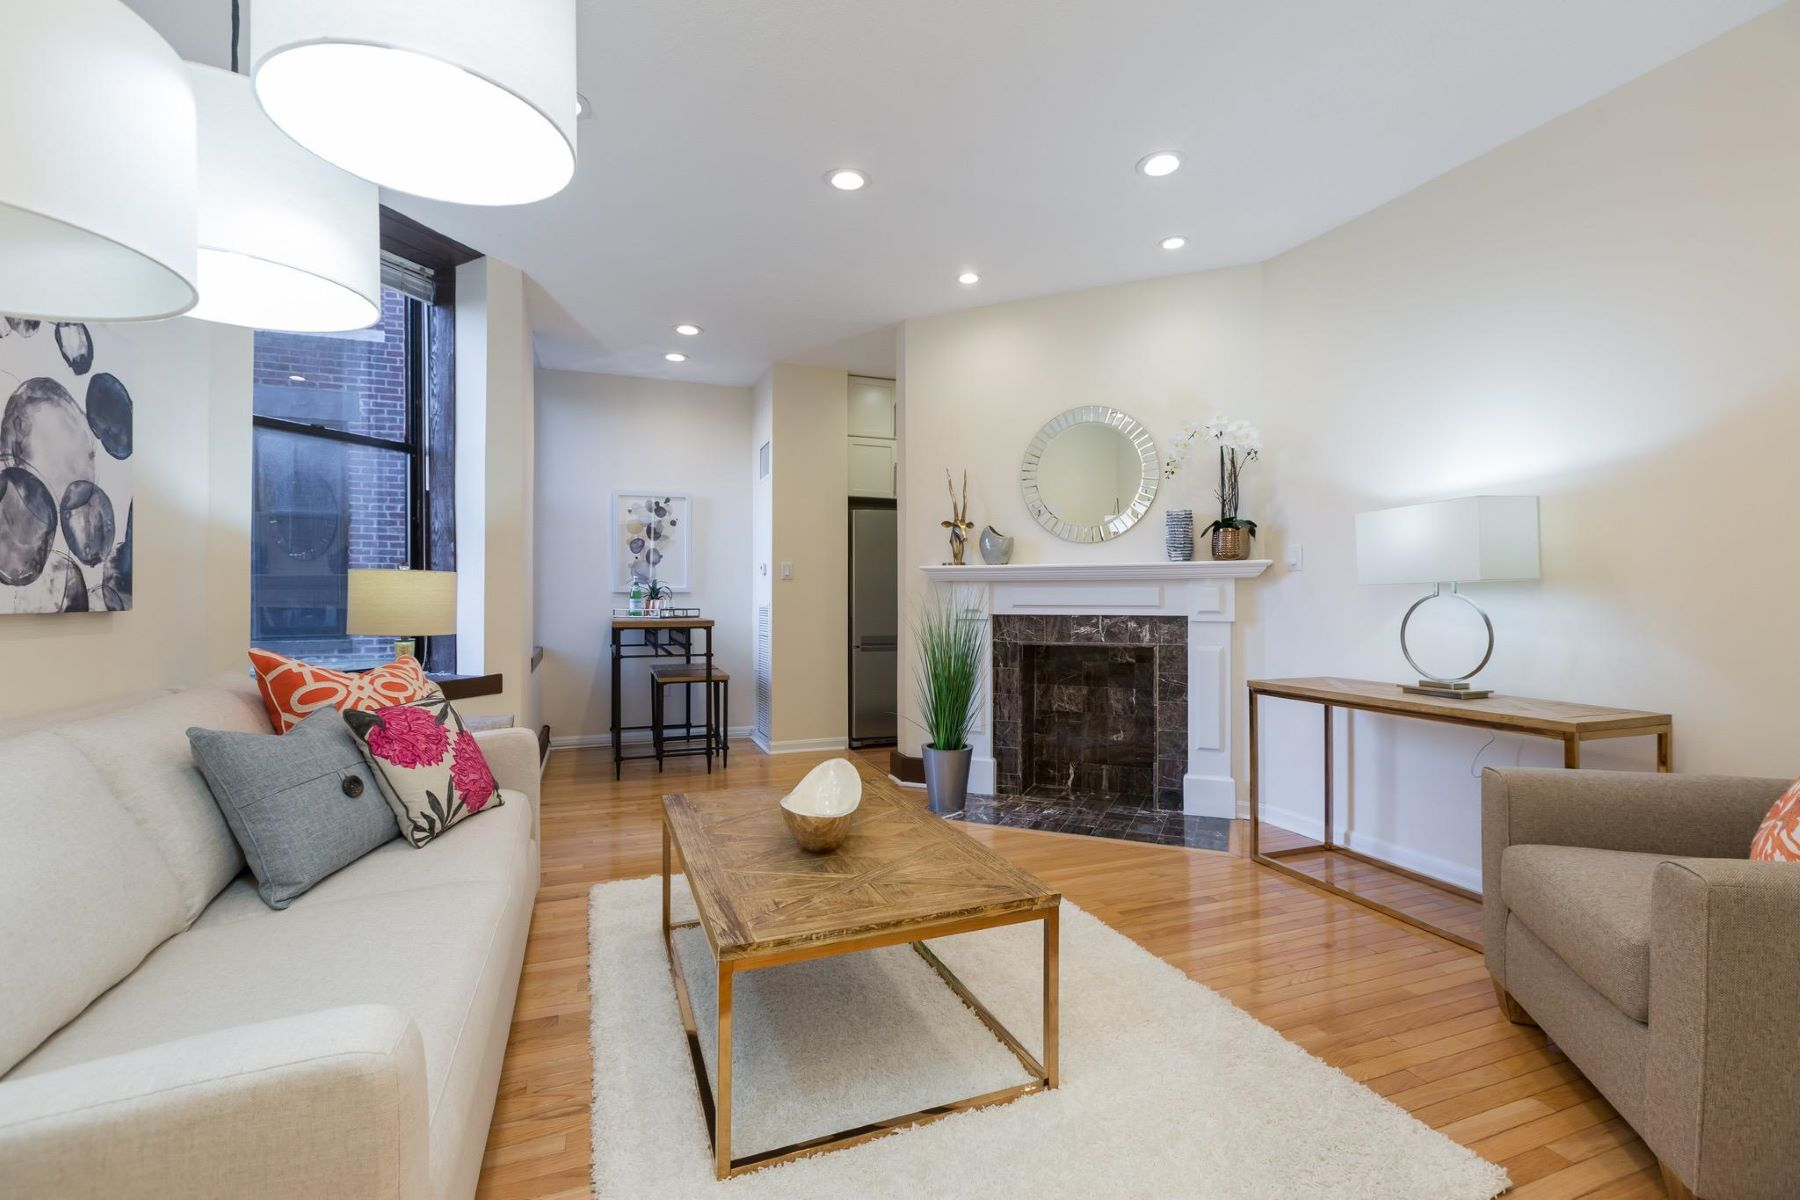 Condominium for Sale at 1615 Q St Nw #207 1615 Q St Nw #207 Washington, District Of Columbia 20009 United States